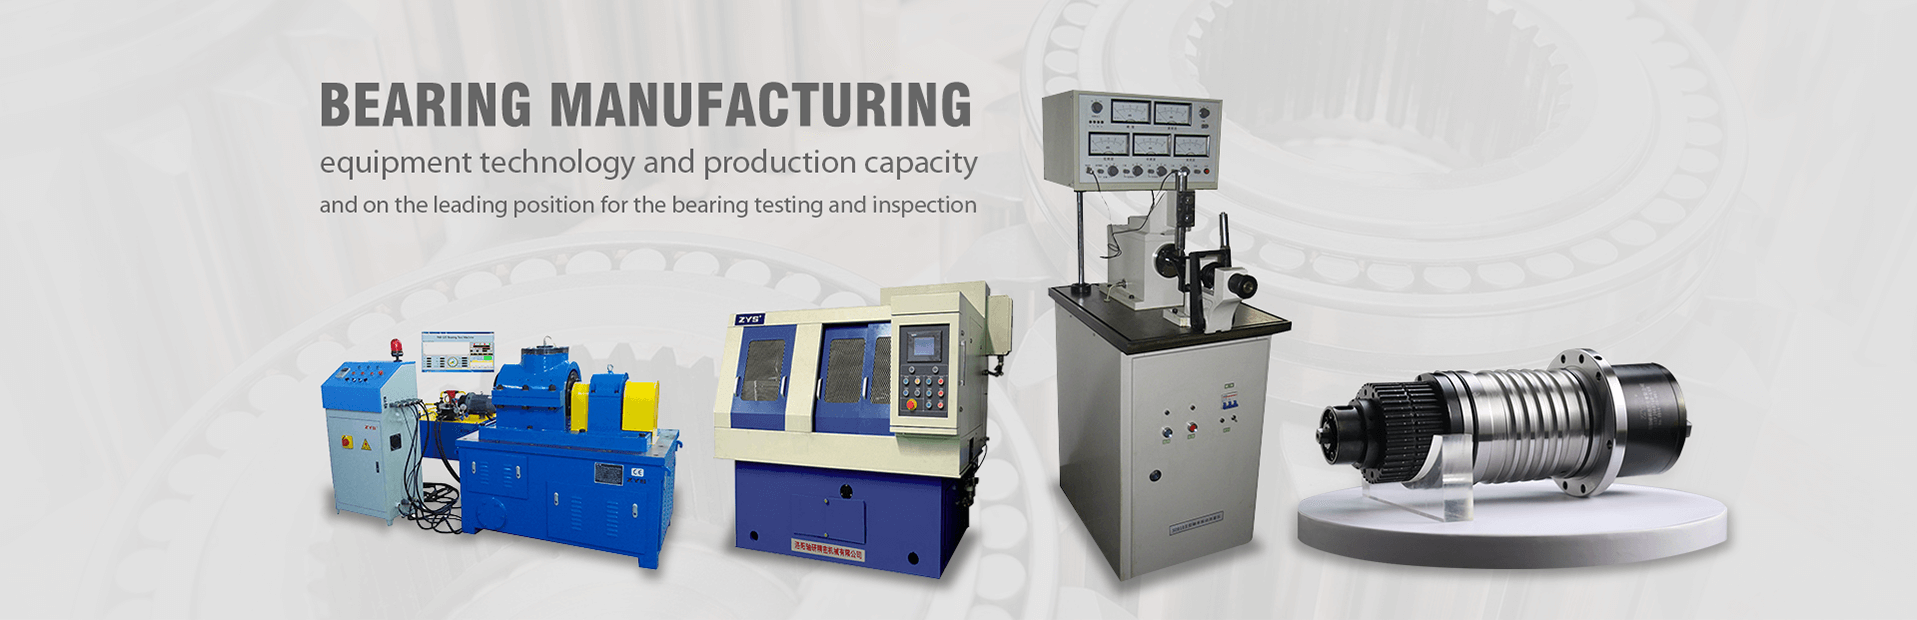 Every day, more than 100,000 ZYS spindle are running in the world.